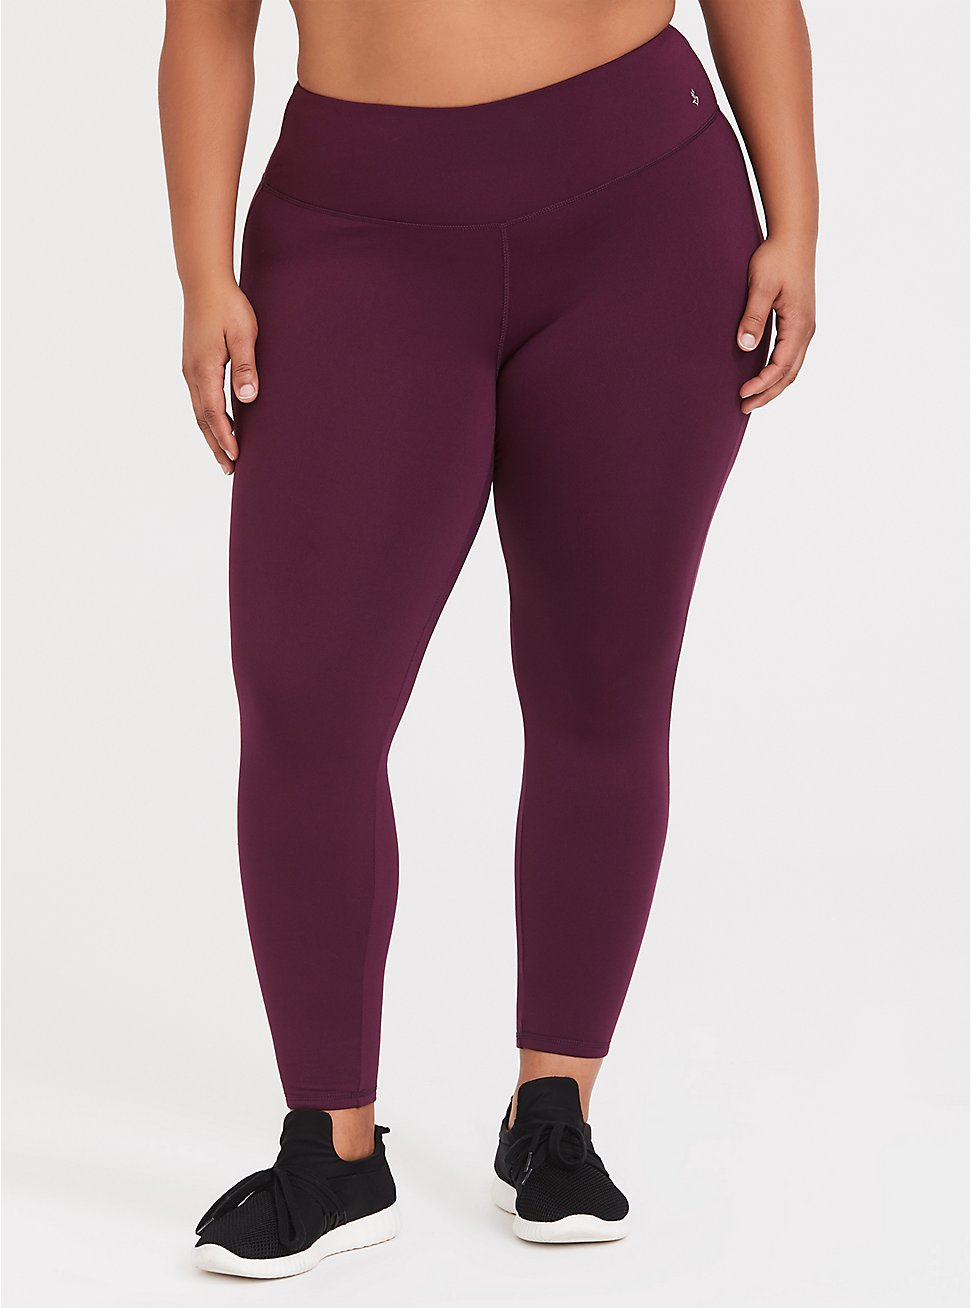 Plus Size Burgundy Purple Fleece Active Legging, BURGUNDY, hi-res